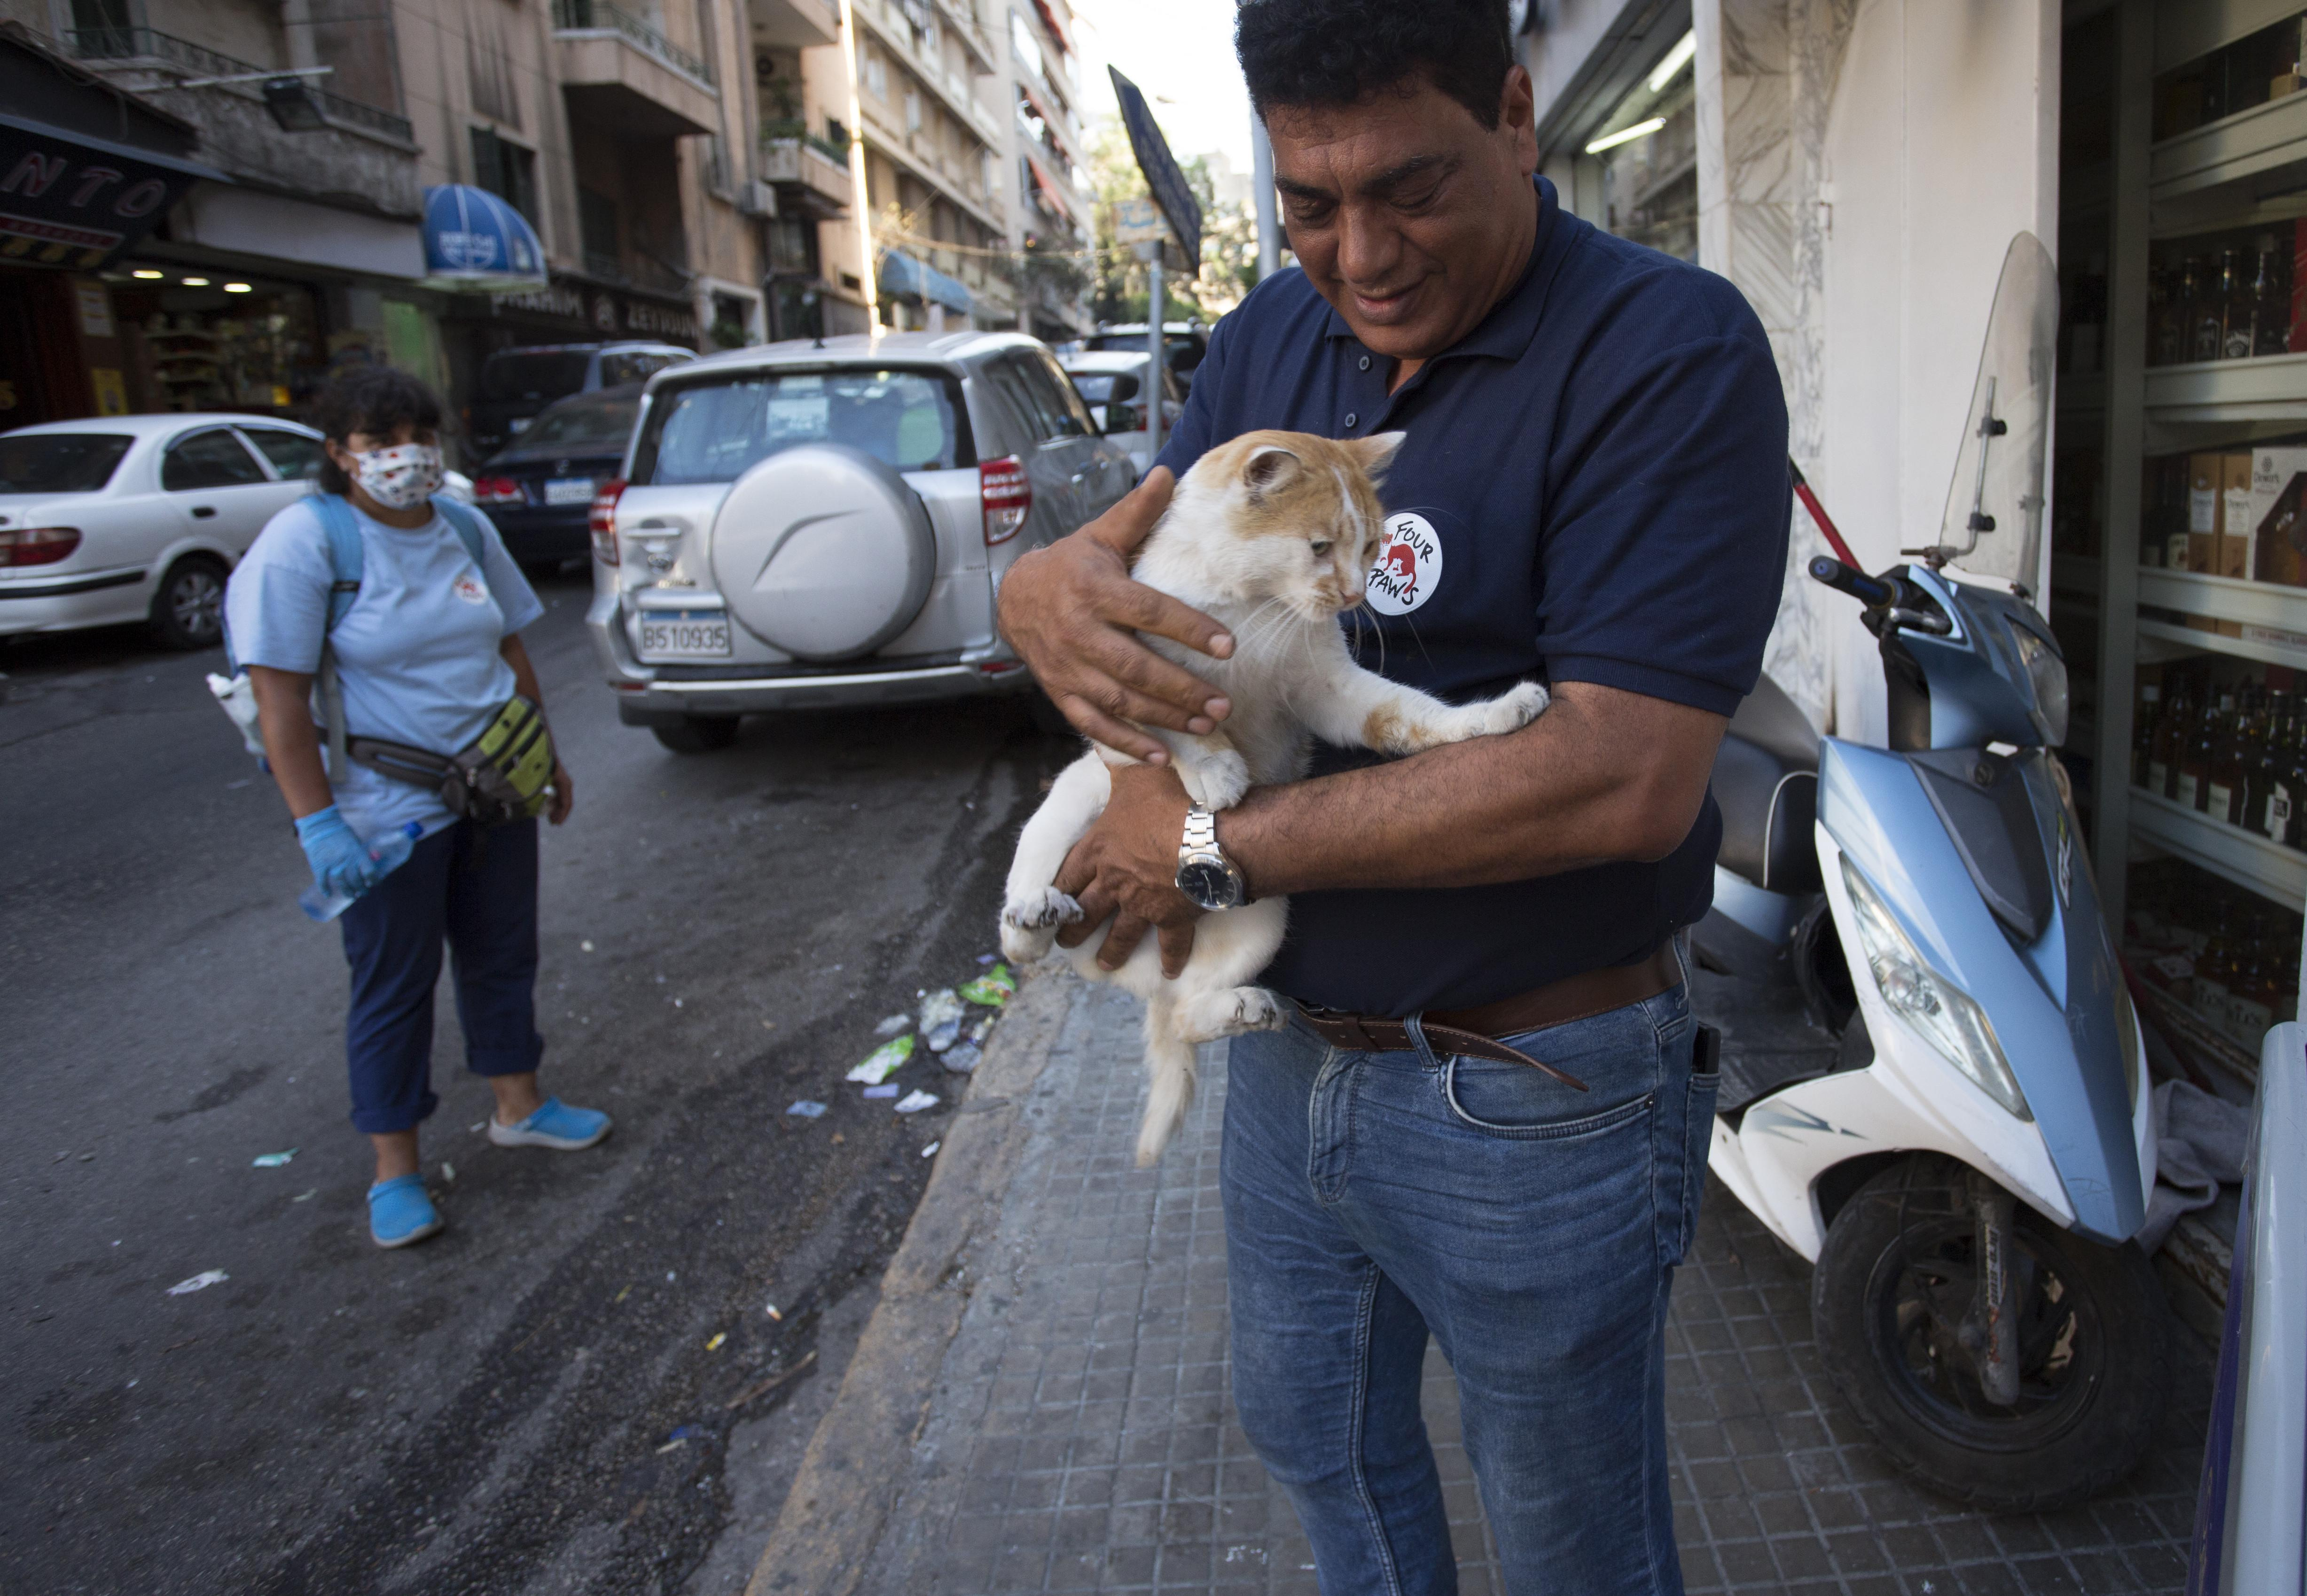 Injured and starving animals in Beirut